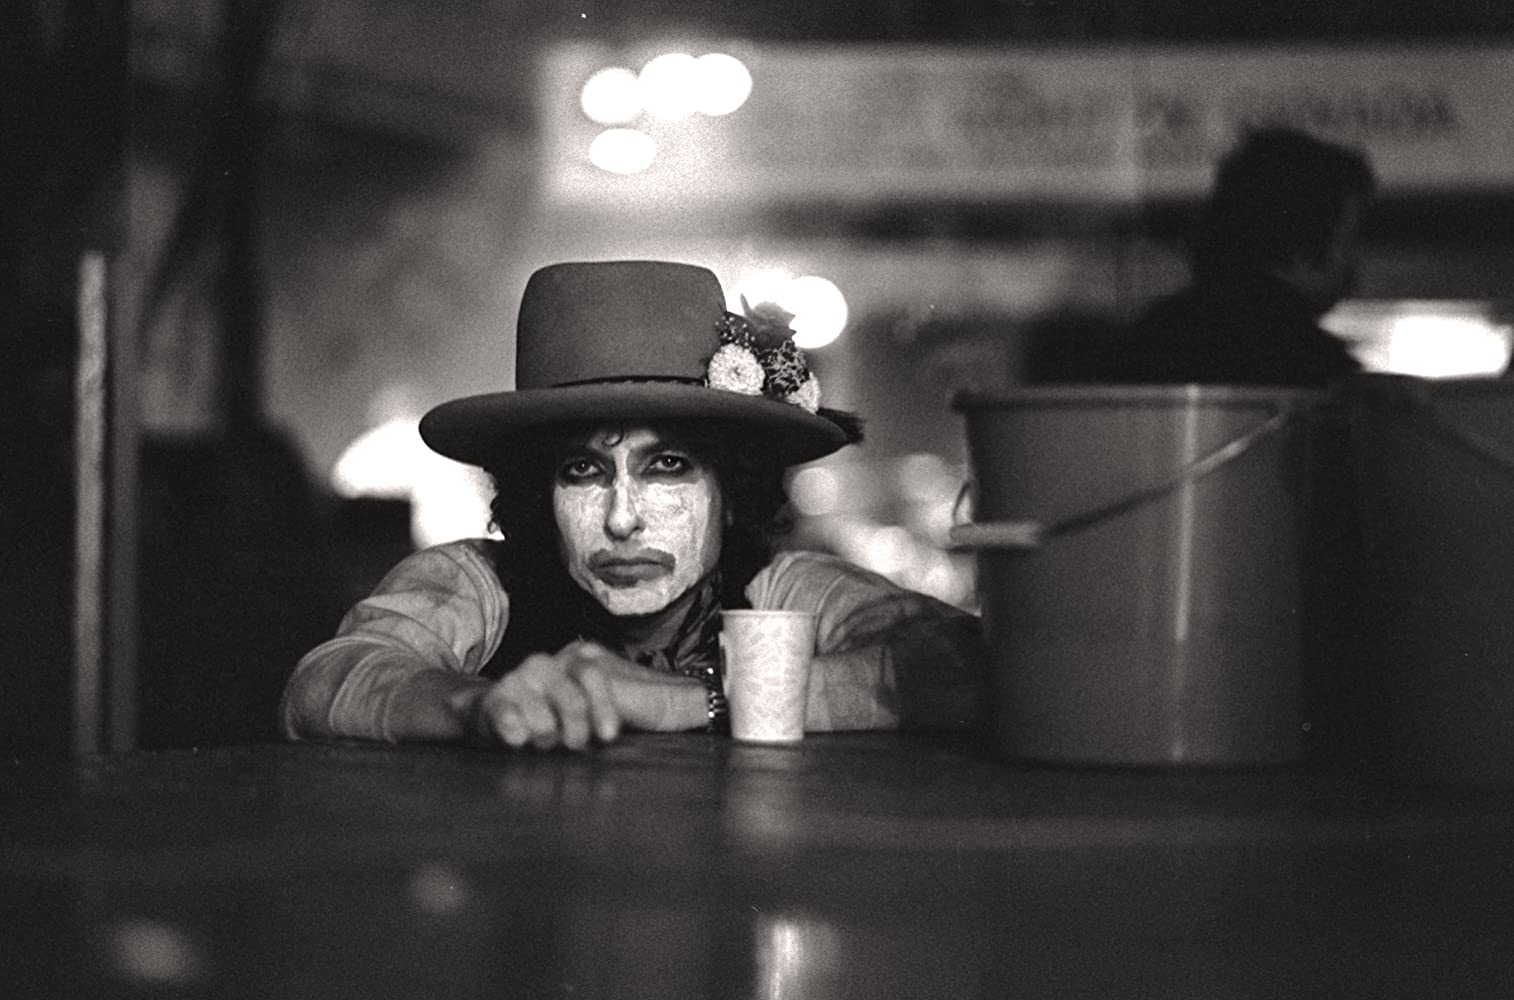 Bob Dylan in Rolling Thunder Revue: A Bob Dylan Story by Martin Scorsese (2019)